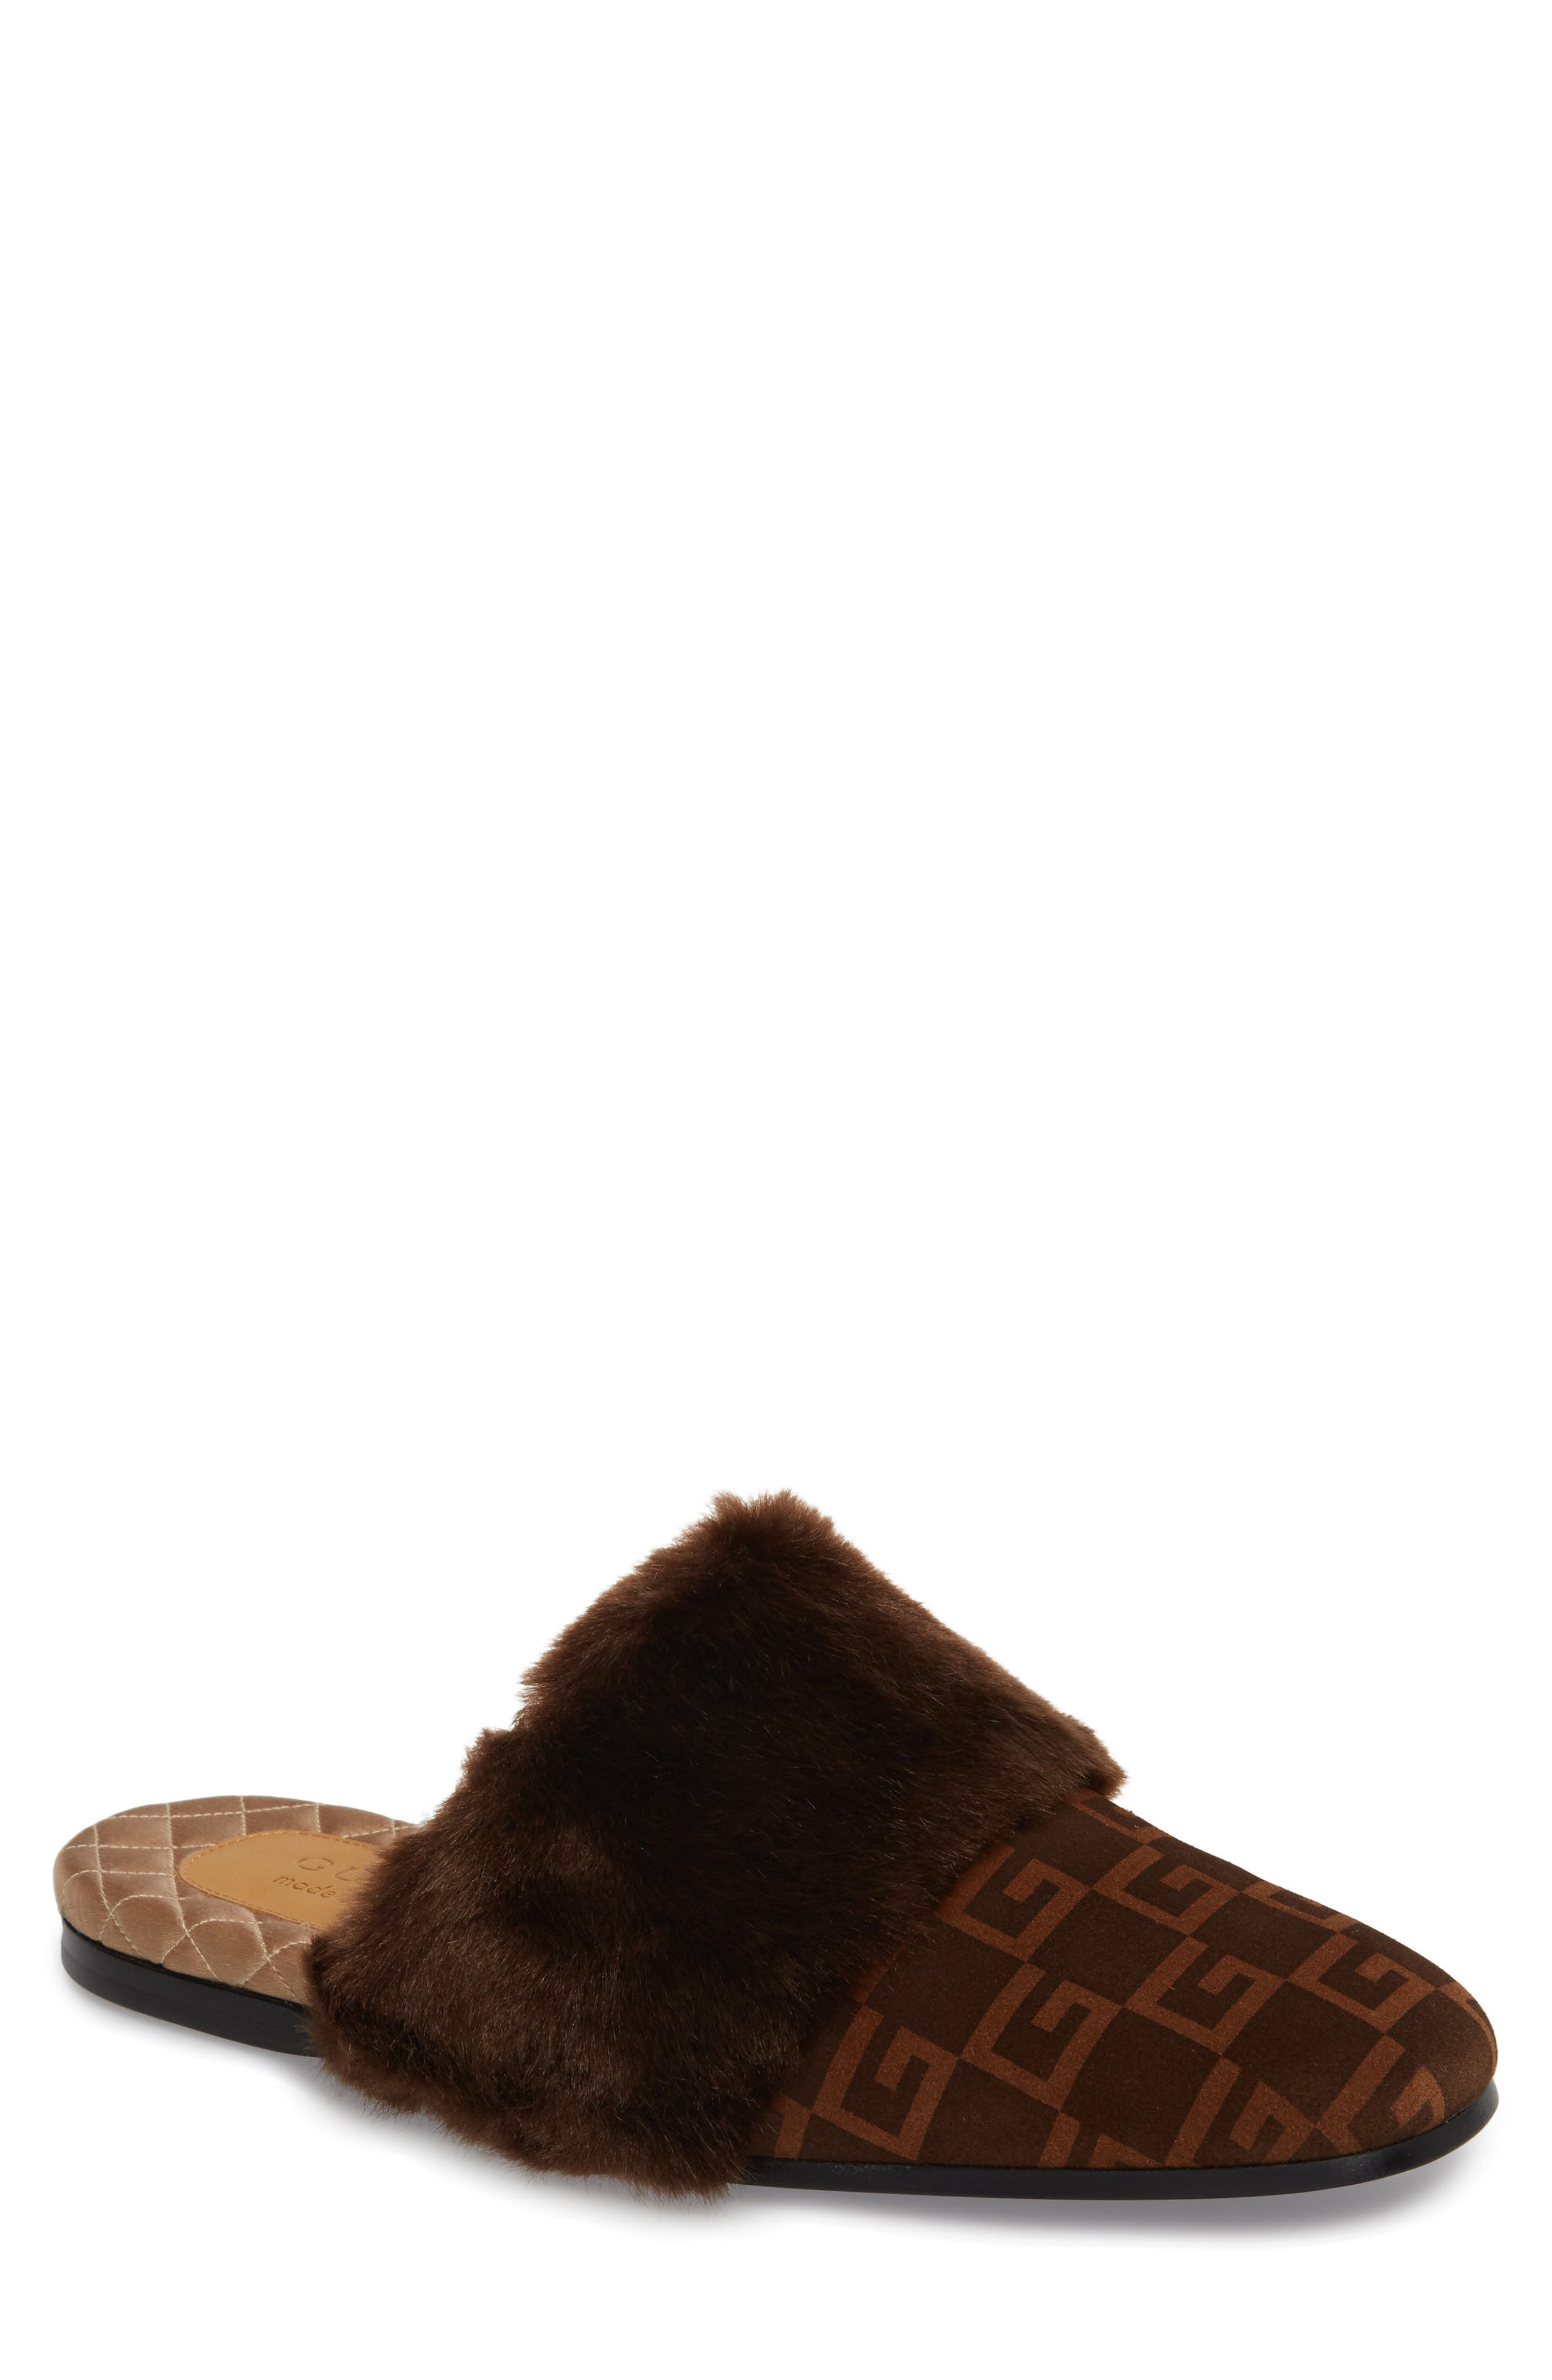 Lawrence Square-G Faux Fur Slipper,                         Main,                         color, Brown/ Sigaro